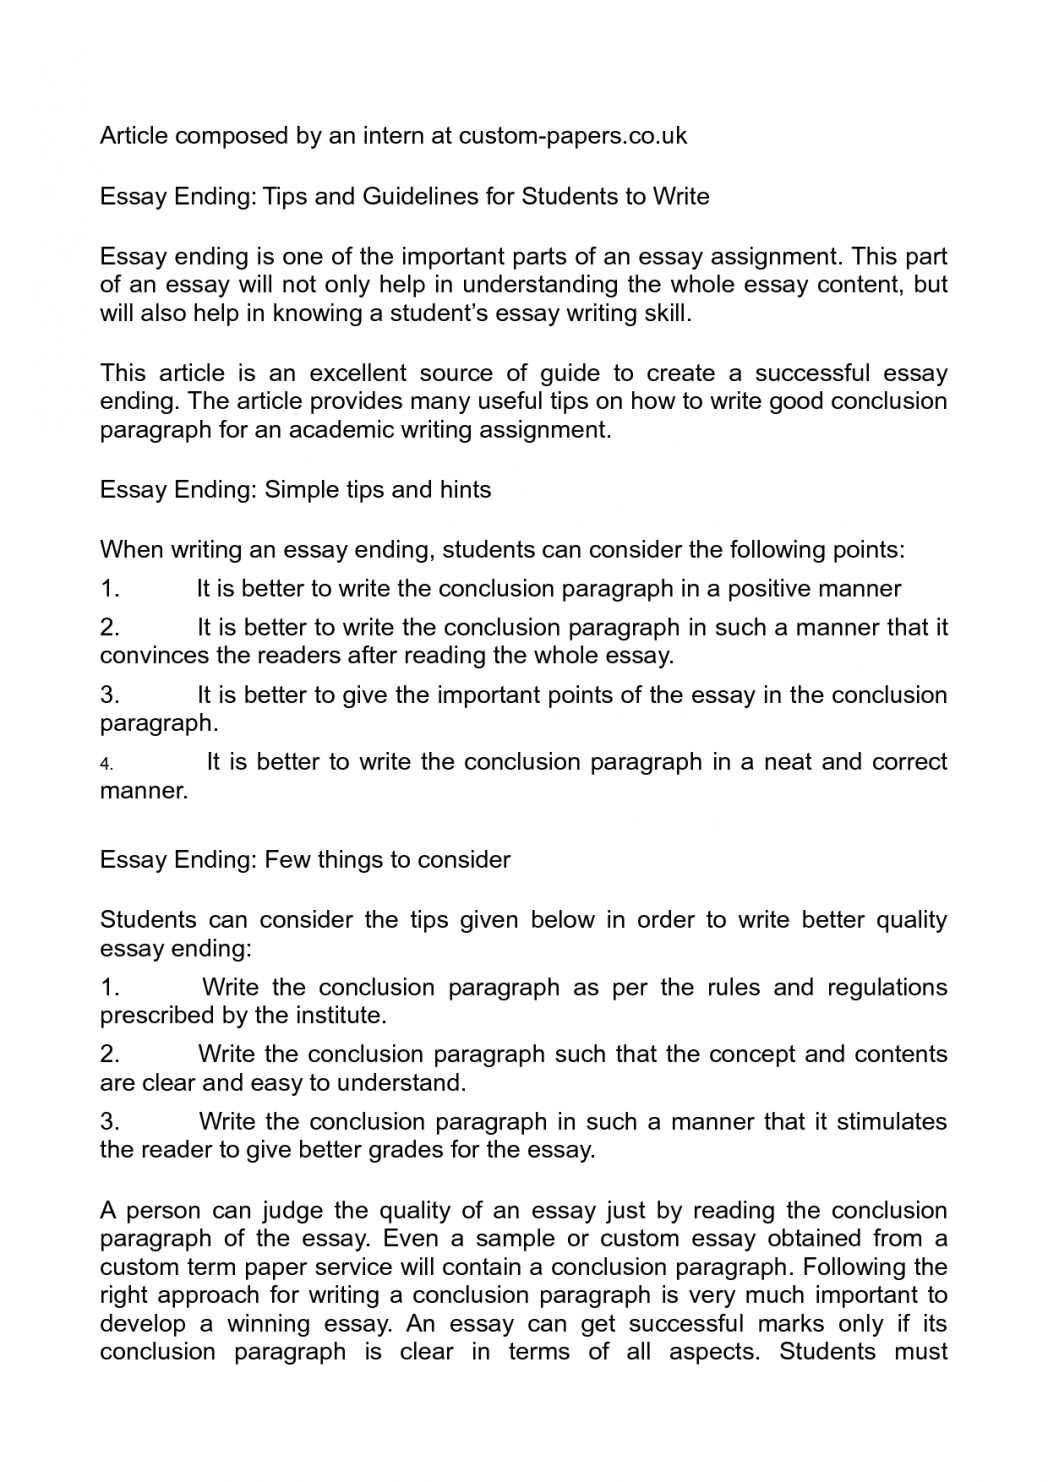 013 Good Ways To End An Essay Example Ending Is It Okay With Question Pzwnx My Wrong Outstanding Opinion Best Way Argumentative What Are Some Full